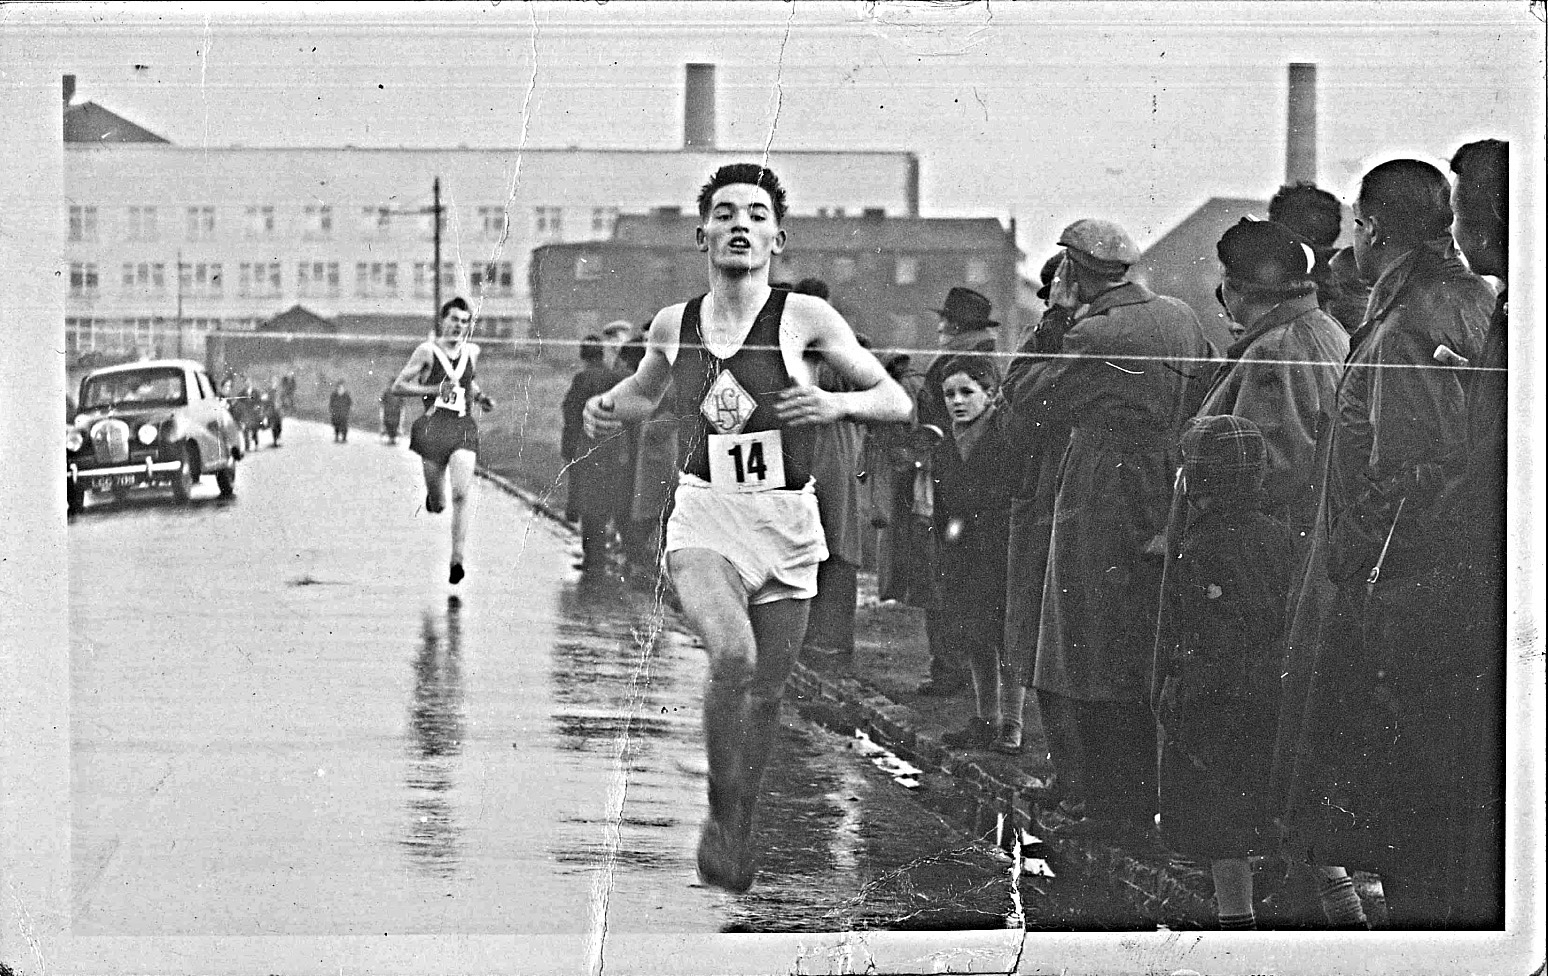 The Author – SCOTTISH DISTANCE RUNNING HISTORY